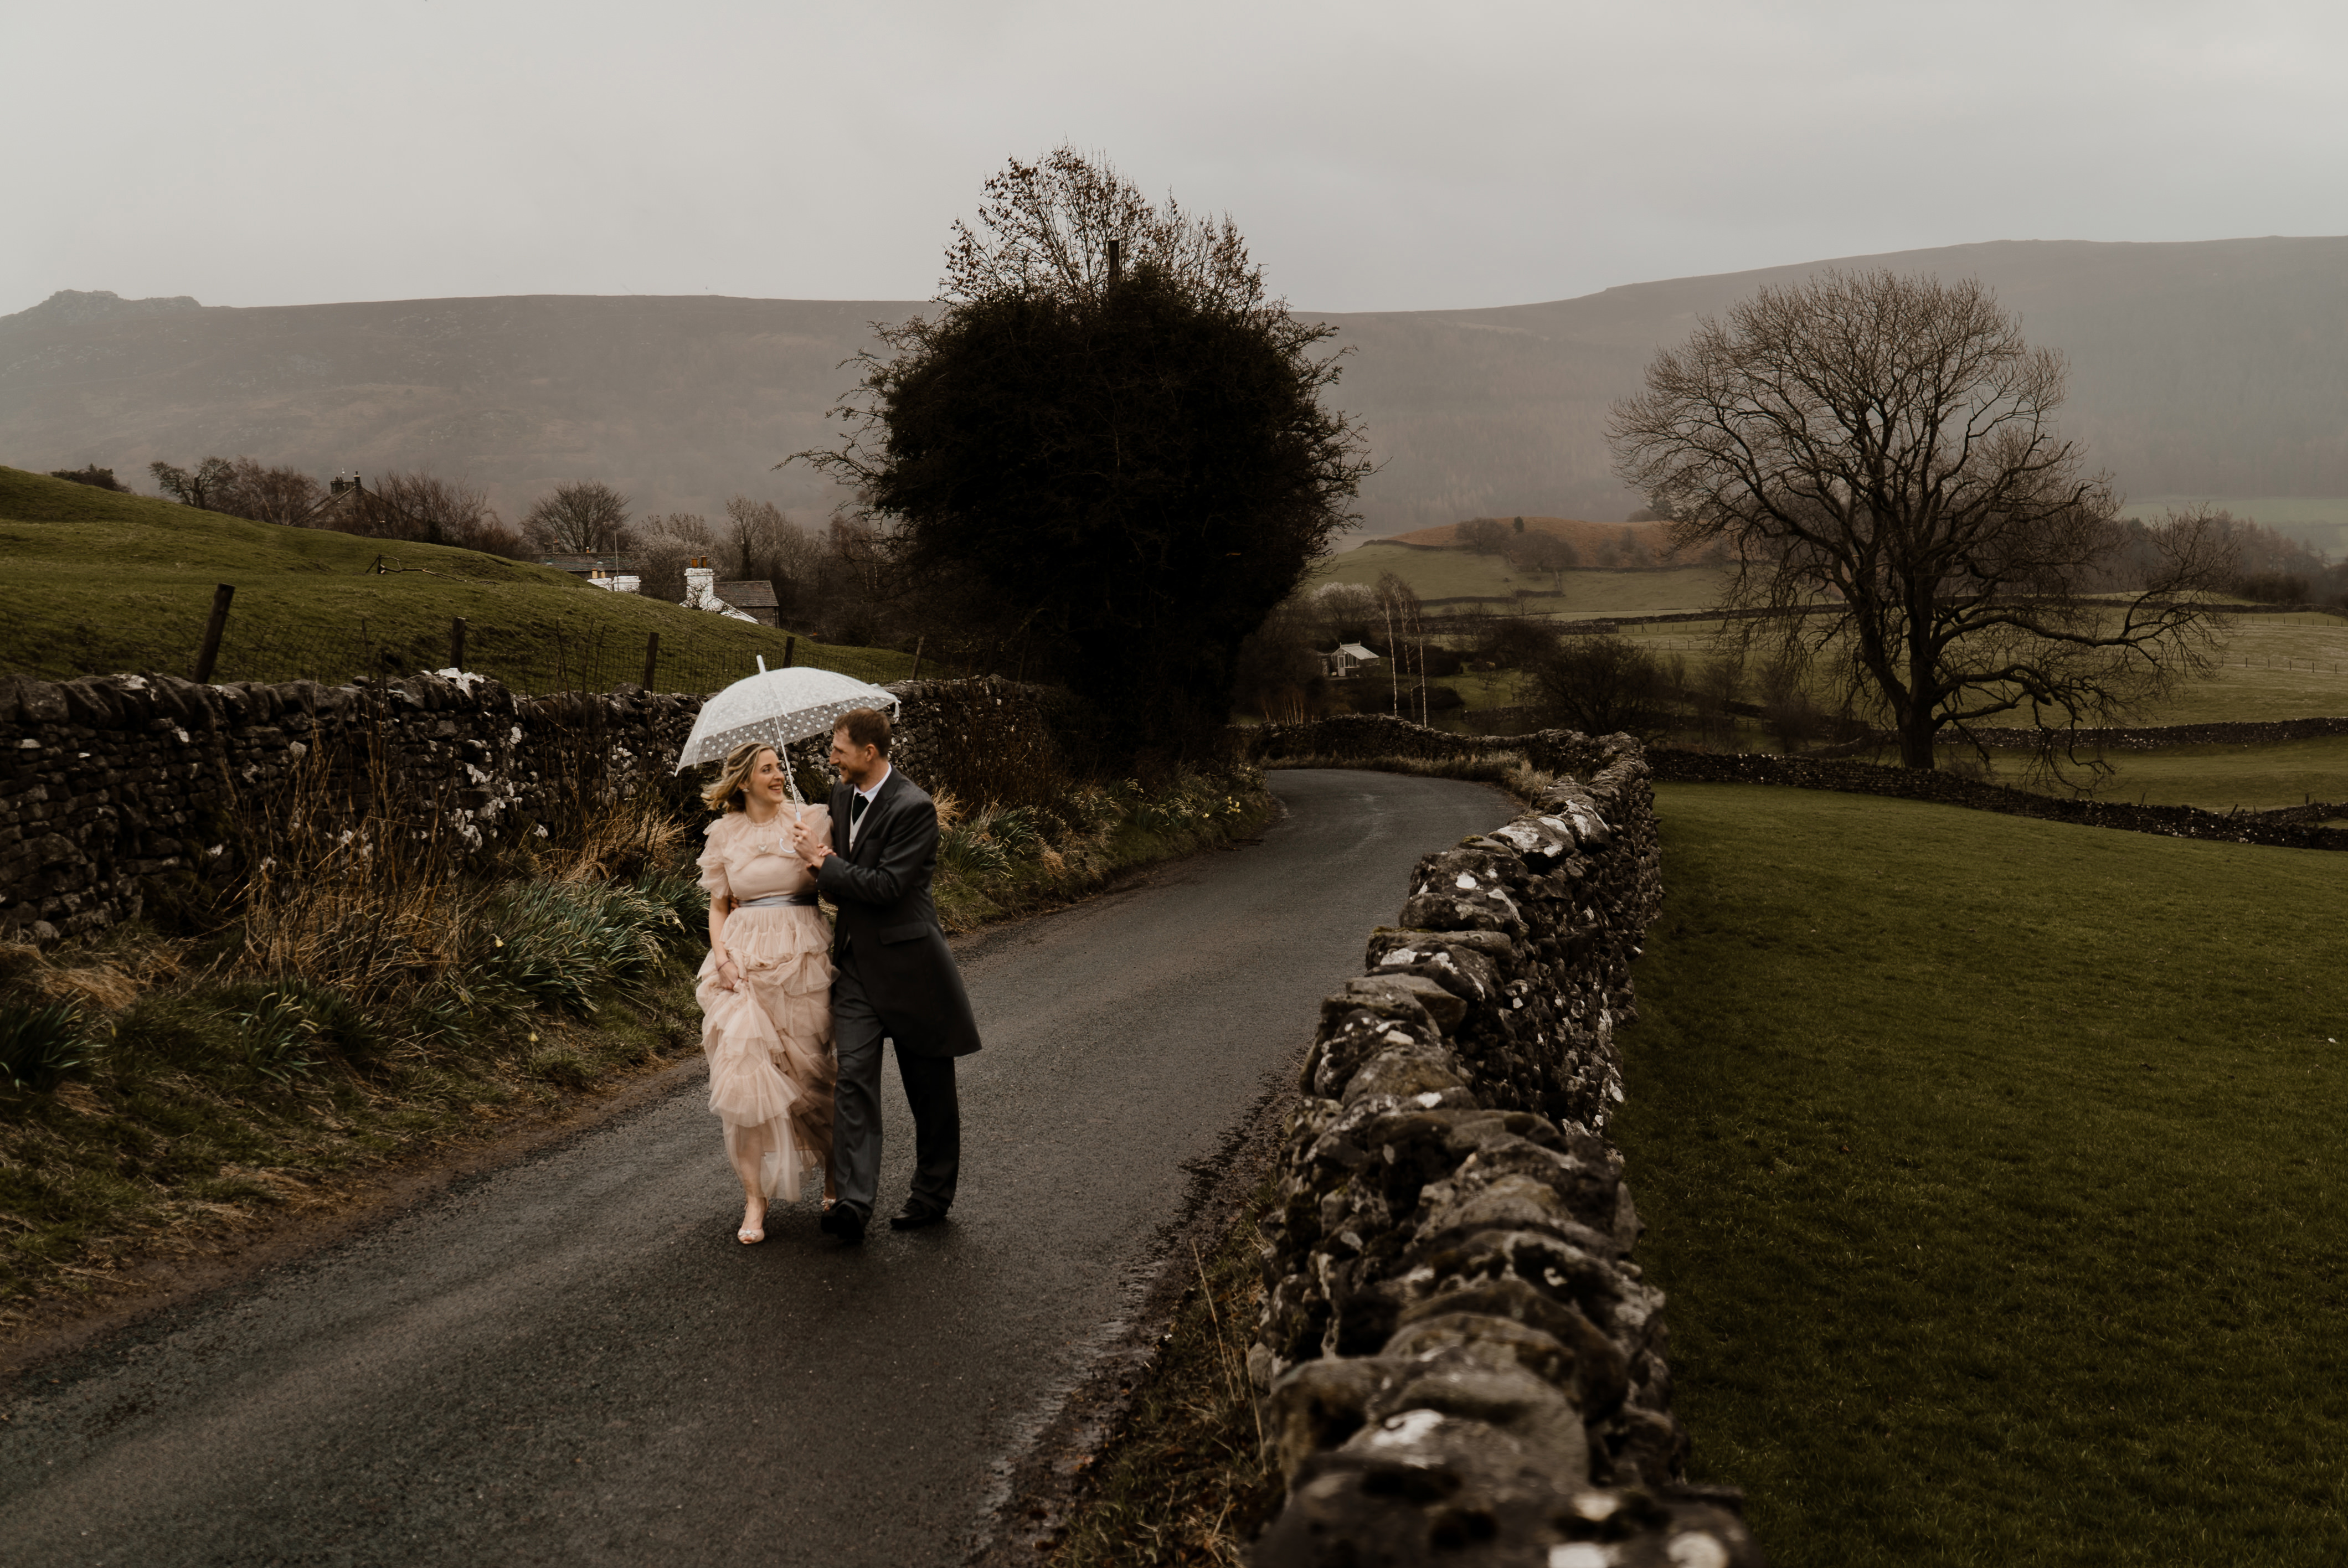 Wedding at Appletreewick